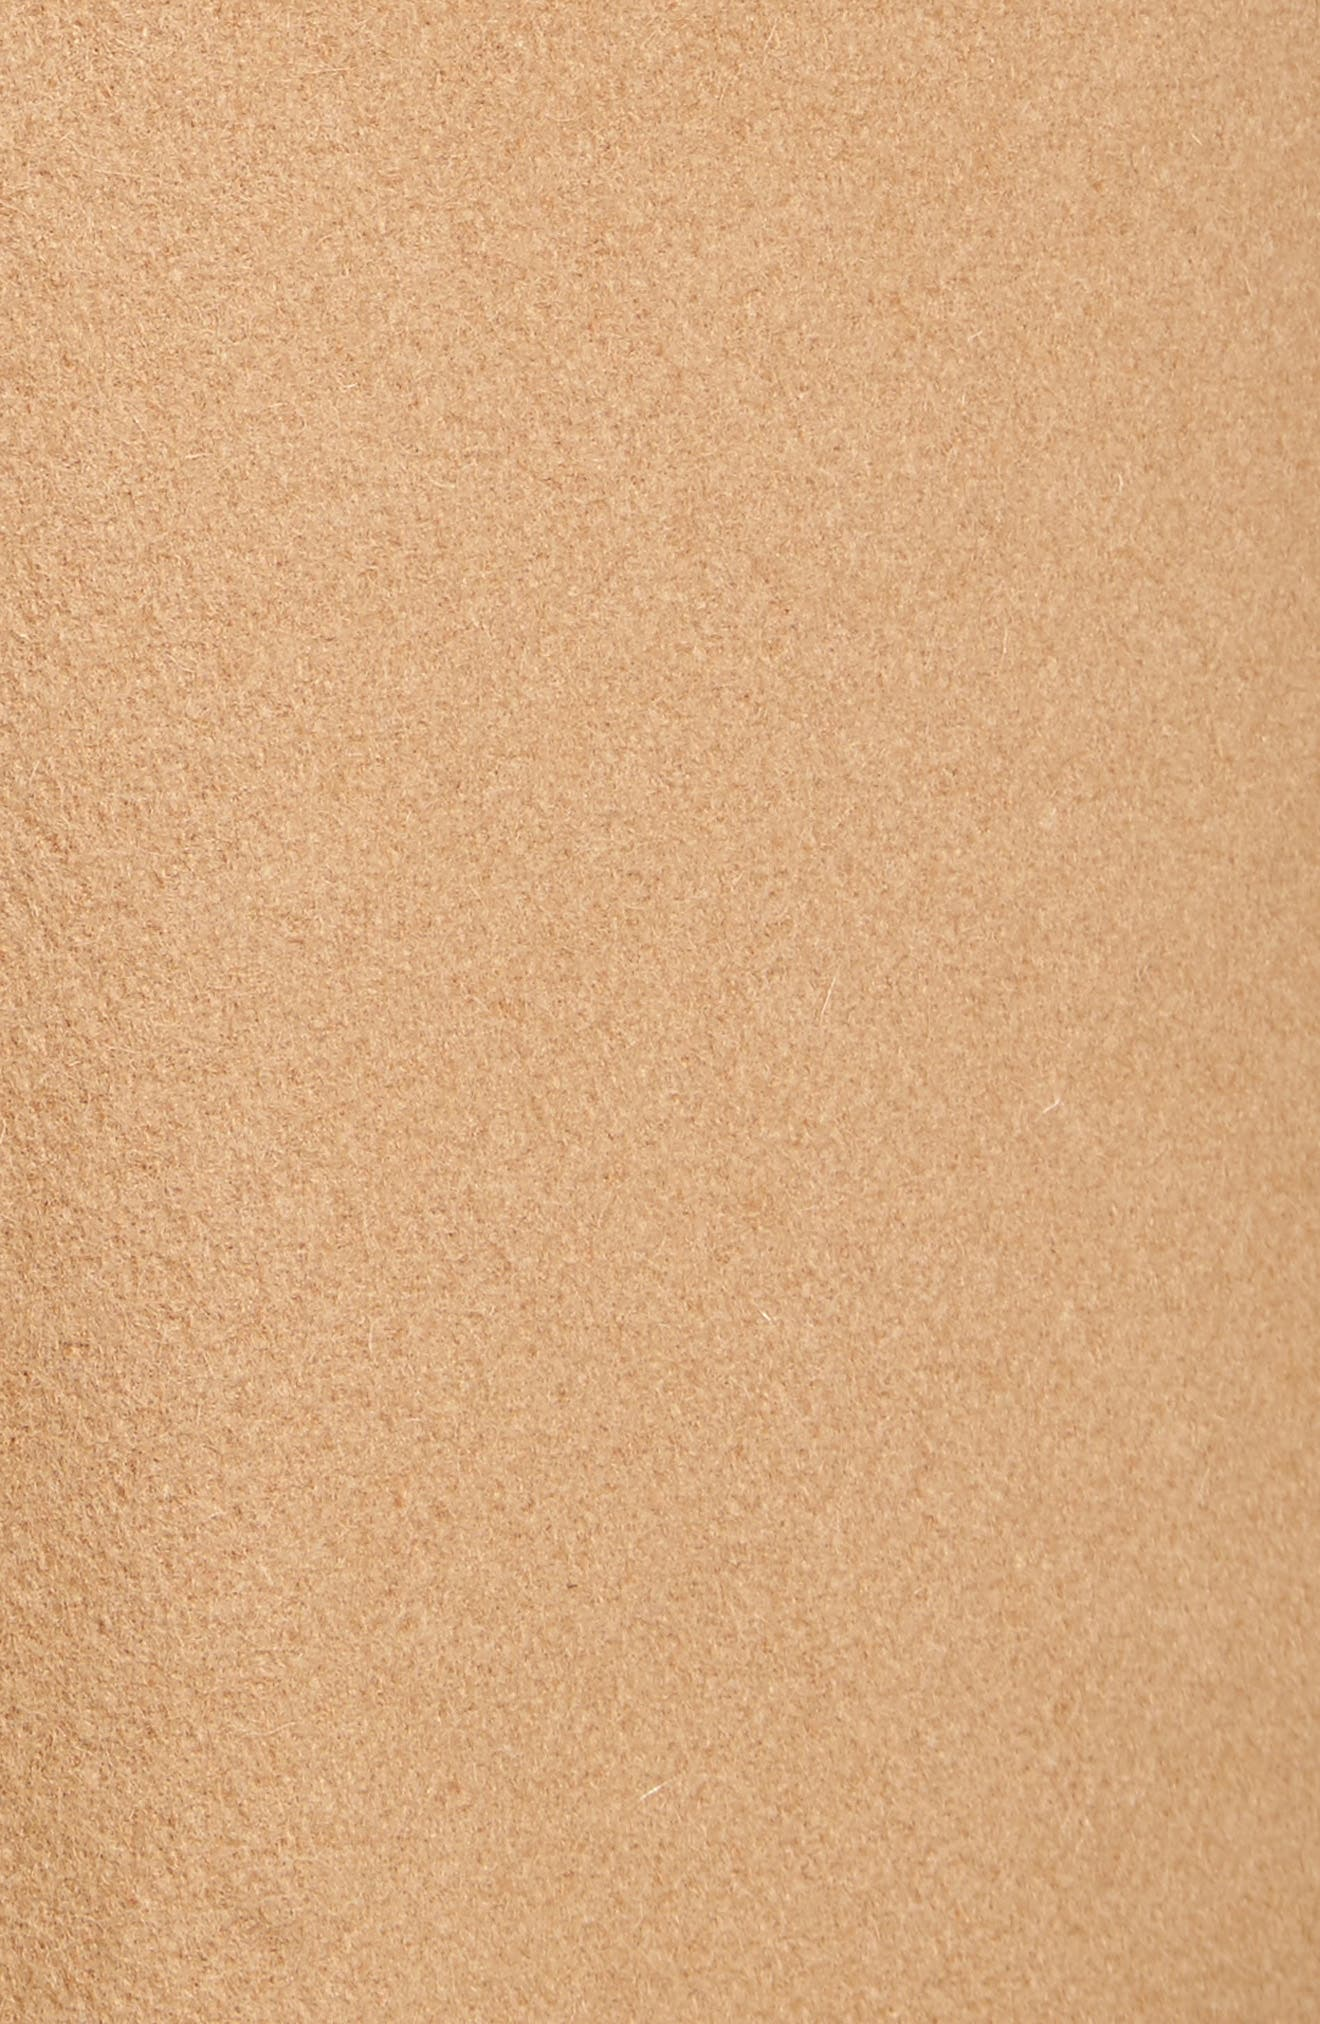 Wool Blend Officer's Coat,                             Alternate thumbnail 5, color,                             CAMEL